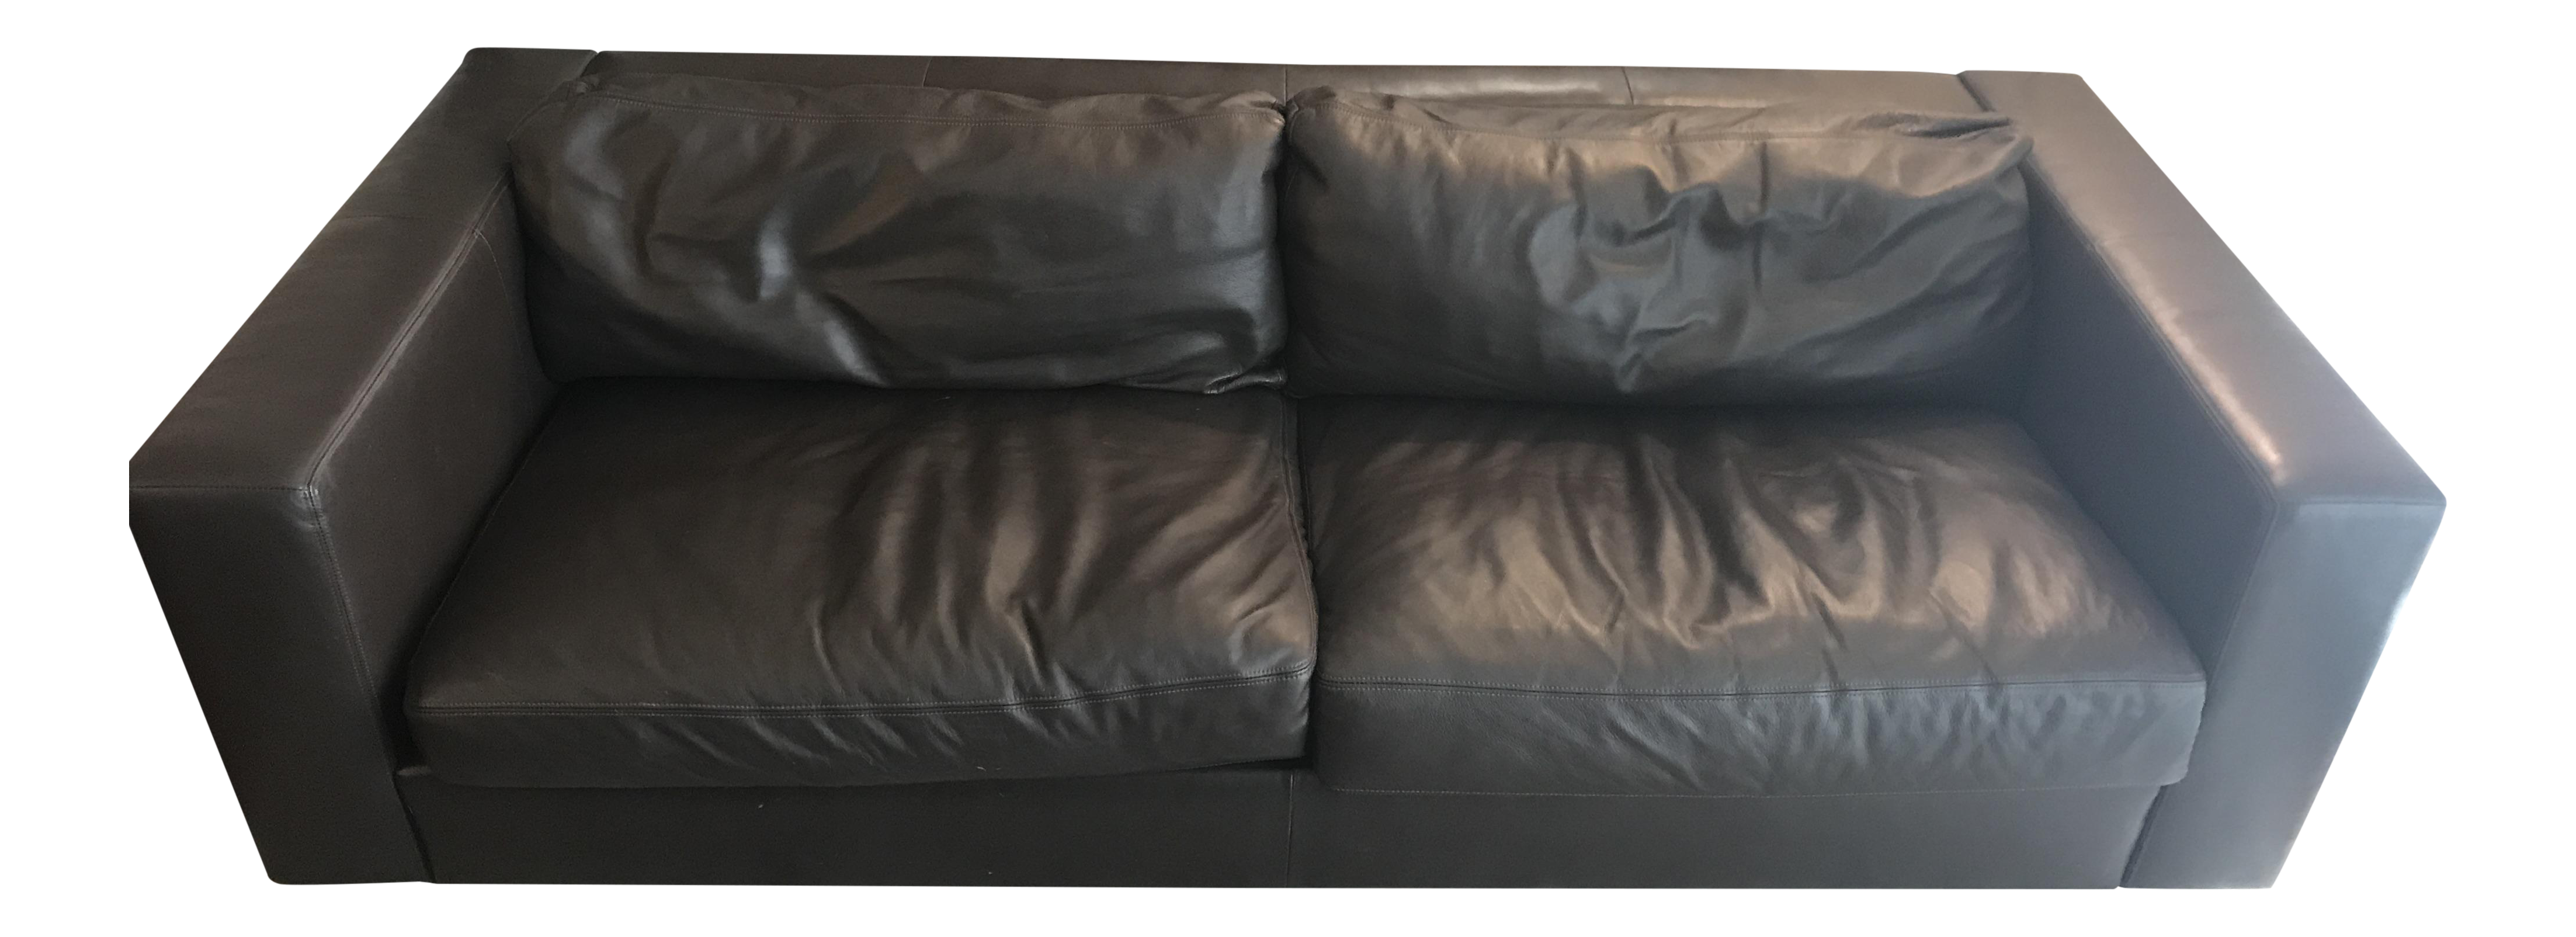 Sofa bed design within reach - Image Of Design Within Reach Reid Sofa